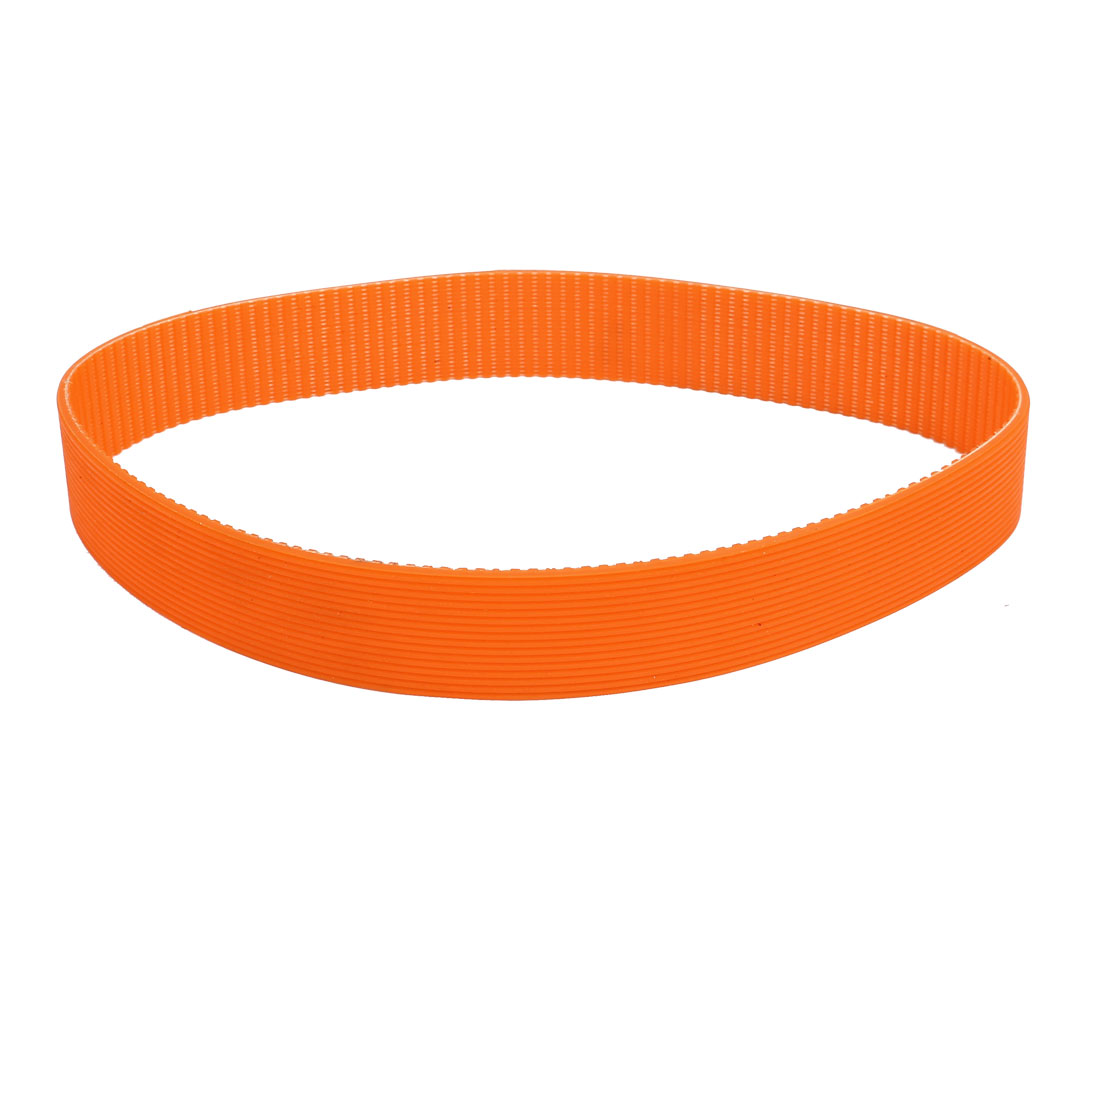 49cm Girth 25mm Width Plastic Cutting Machine Driving Belt Replacement Orange